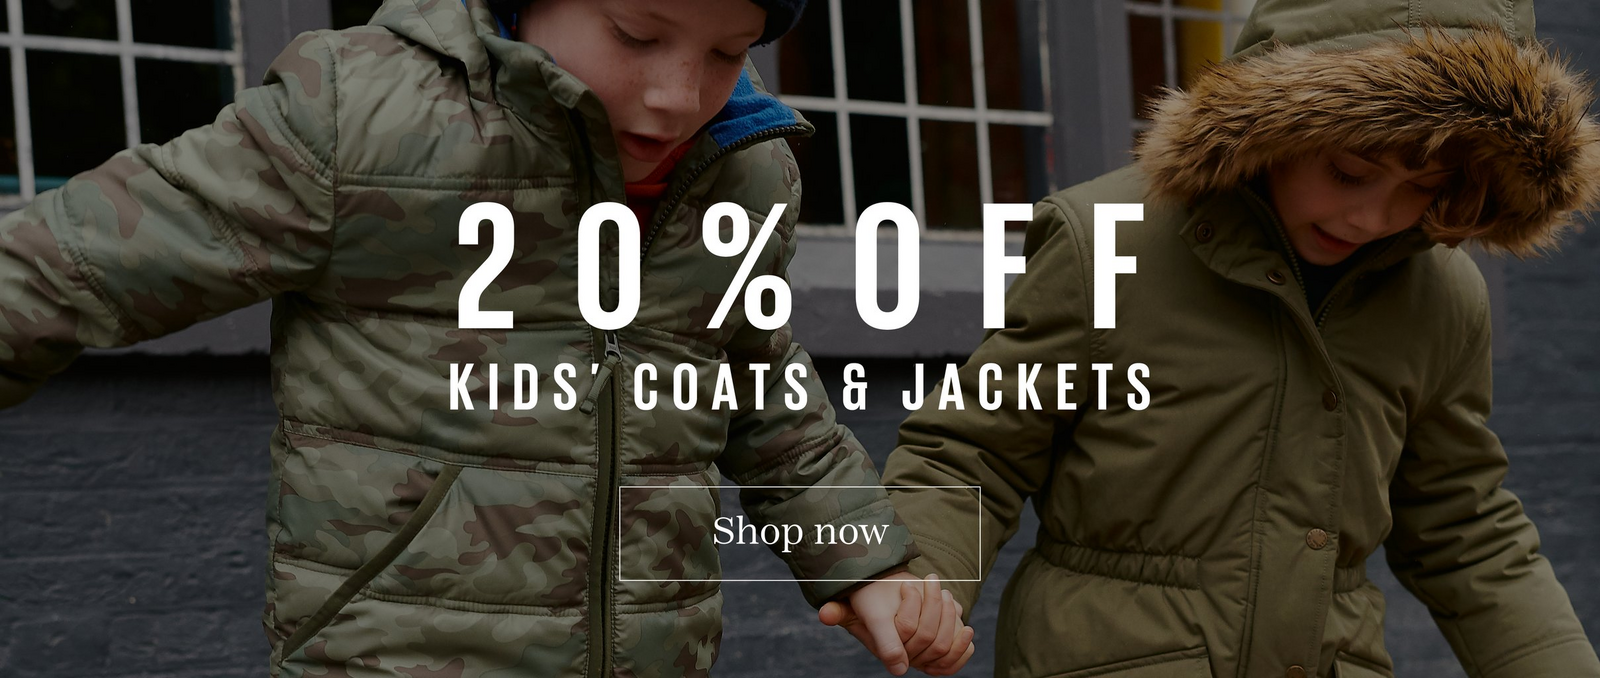 20% off kids coats and jackets. Shop now. In the background, a girl and boy playing outside, wearing warm coats.